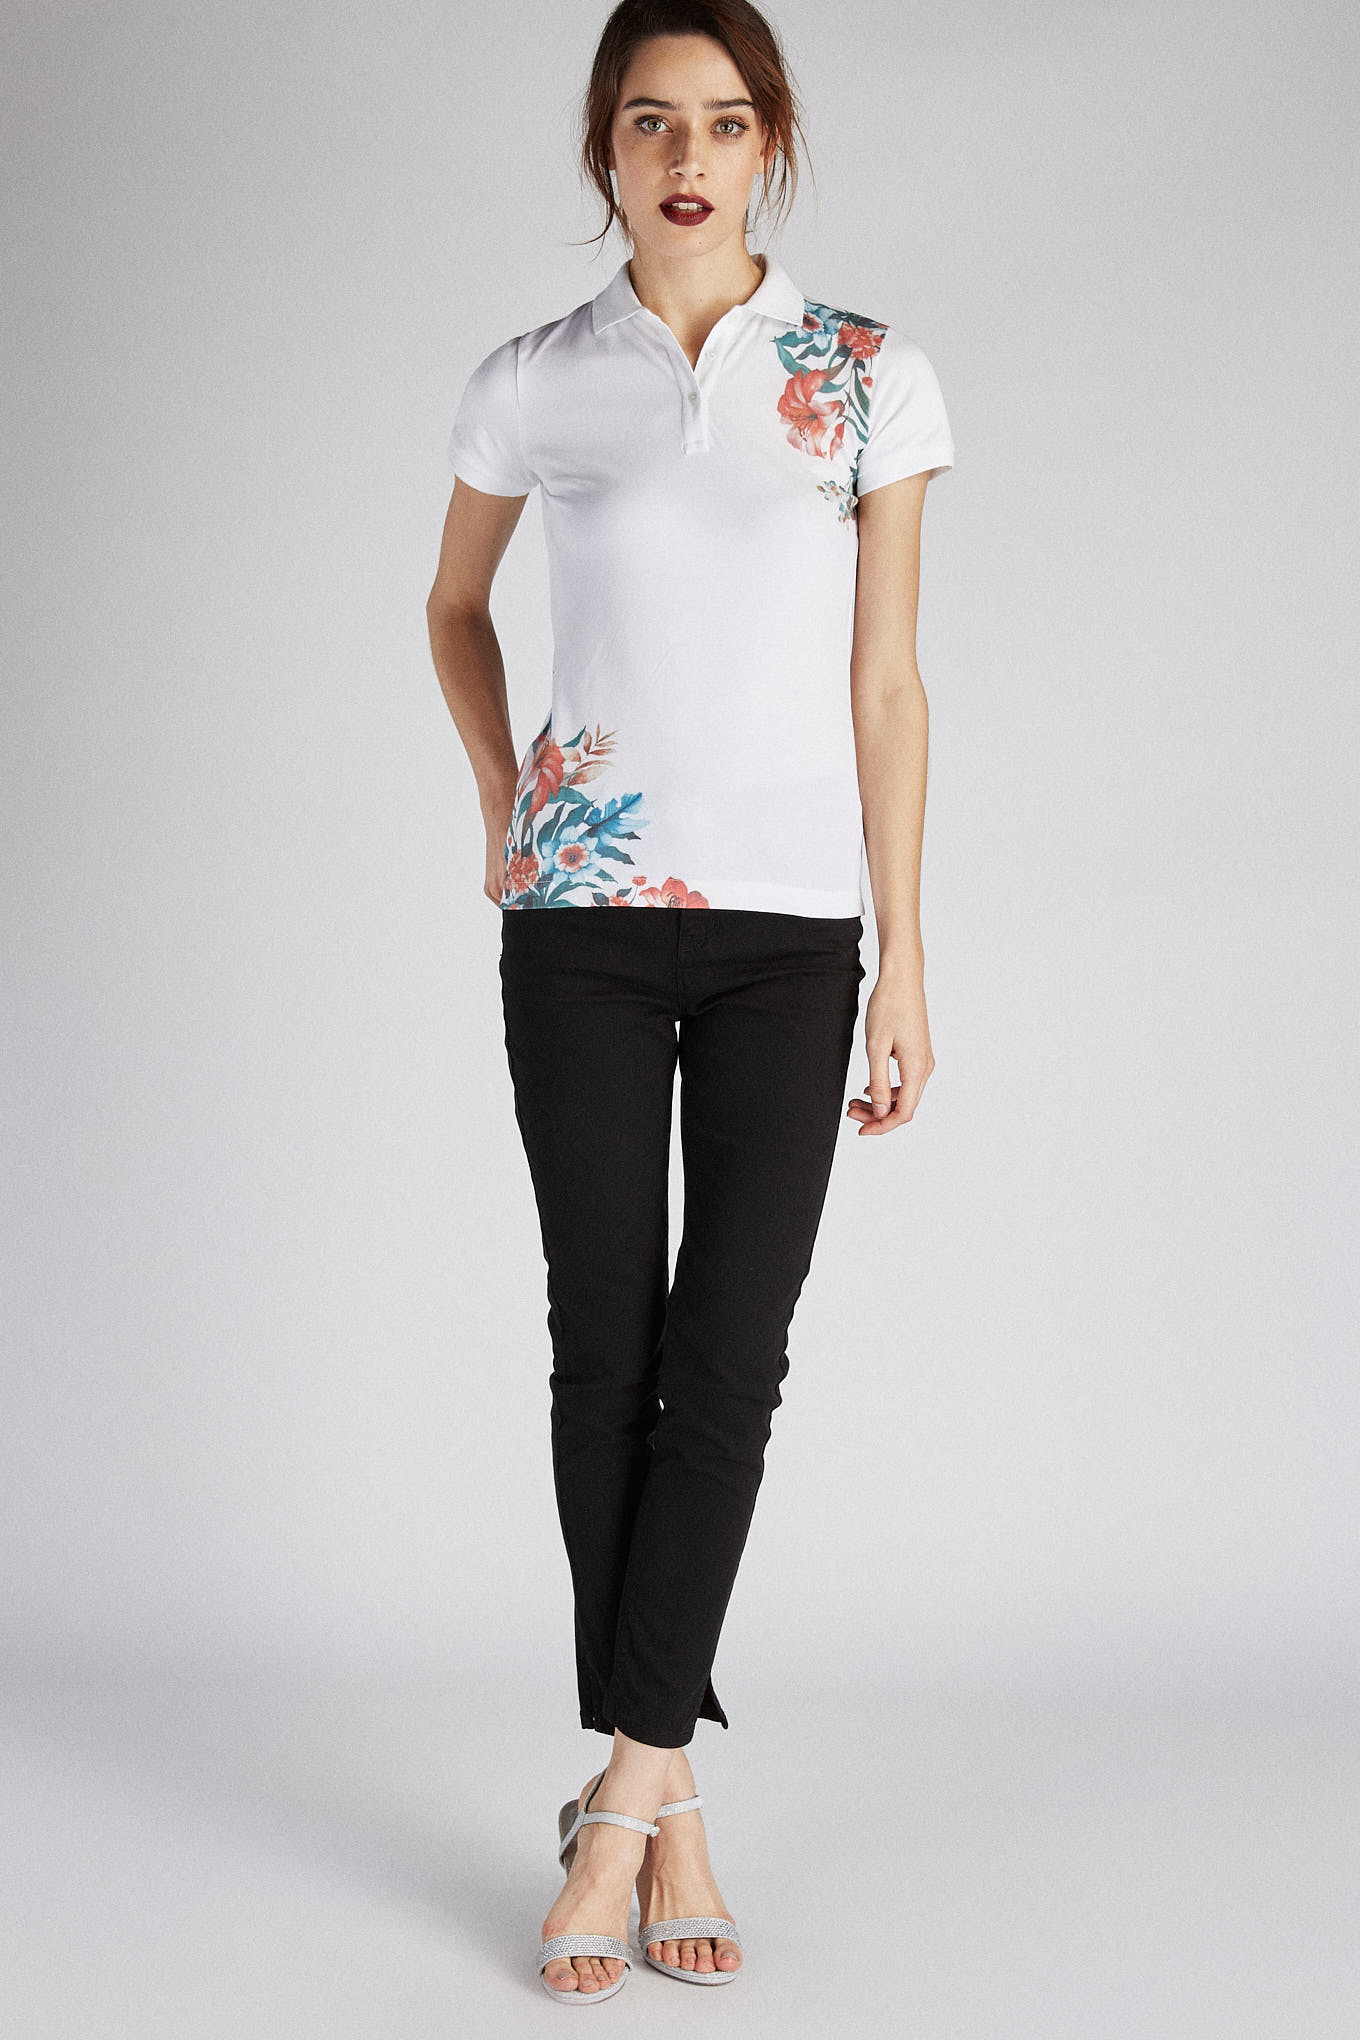 Polo Piquet Print Sport Woman